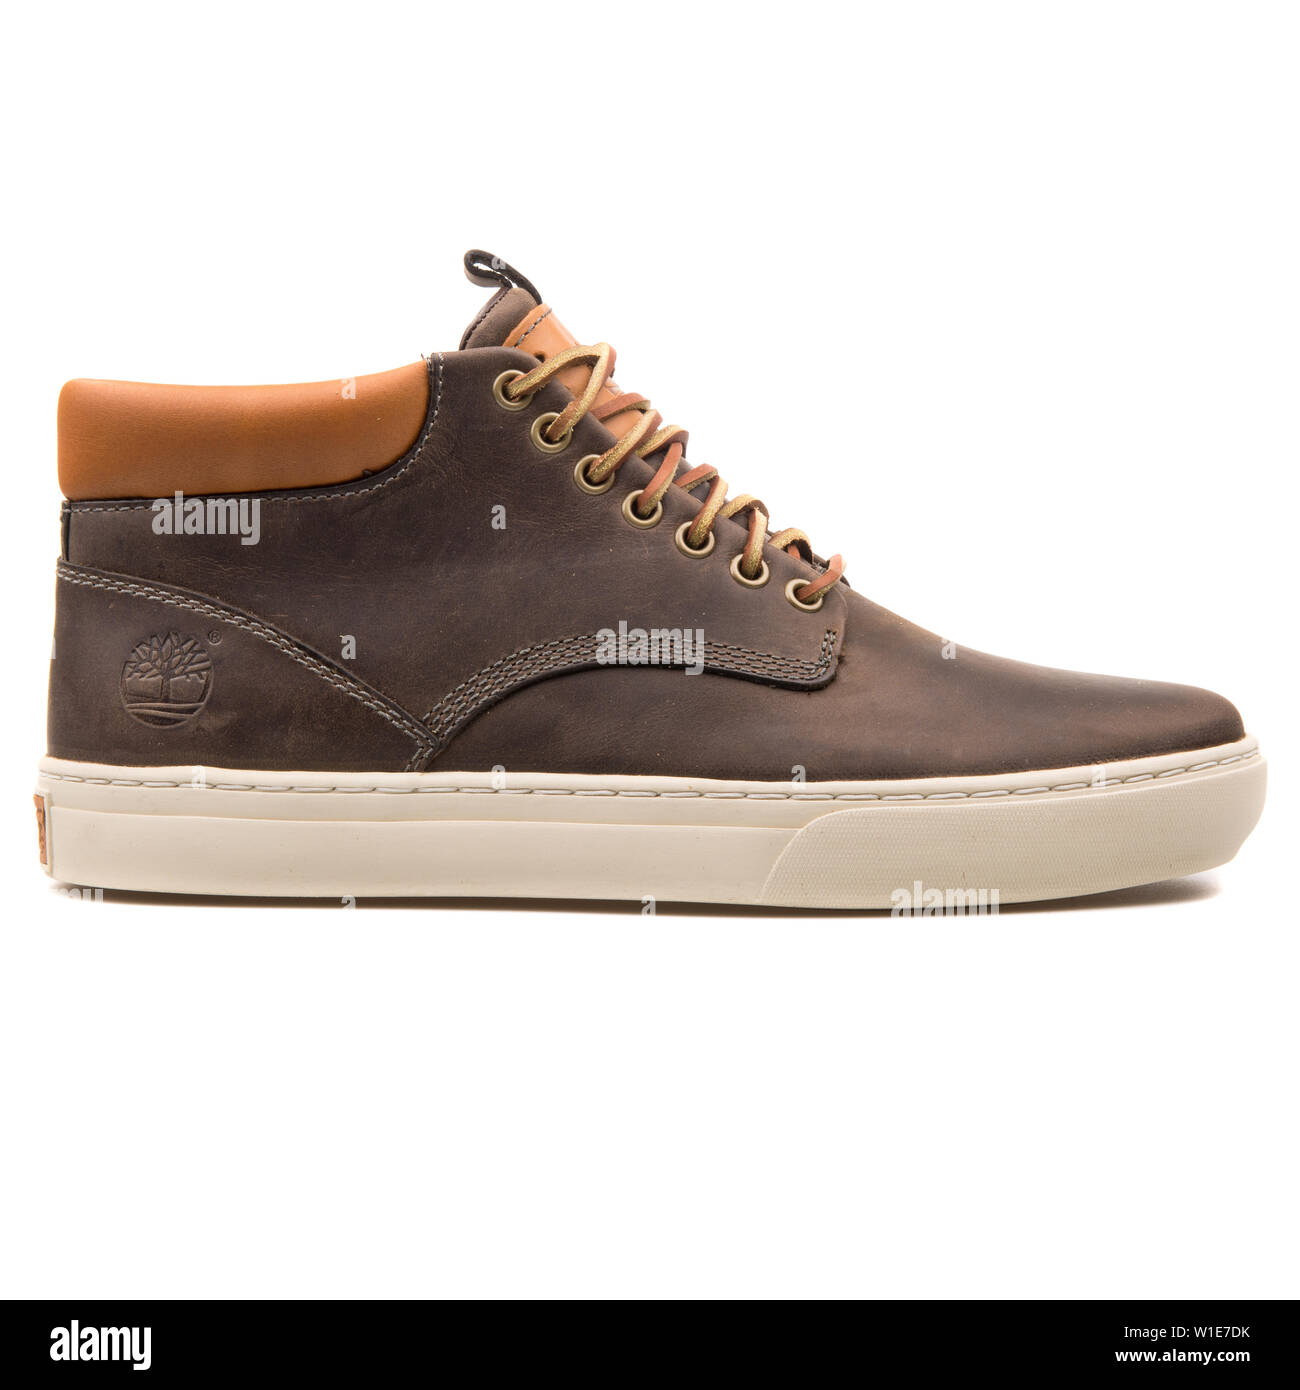 Precursor El propietario Recurso  VIENNA, AUSTRIA - AUGUST 25, 2017: Timberland Earthkeepers Cupsol Chukka  dark brown shoe on white background Stock Photo - Alamy